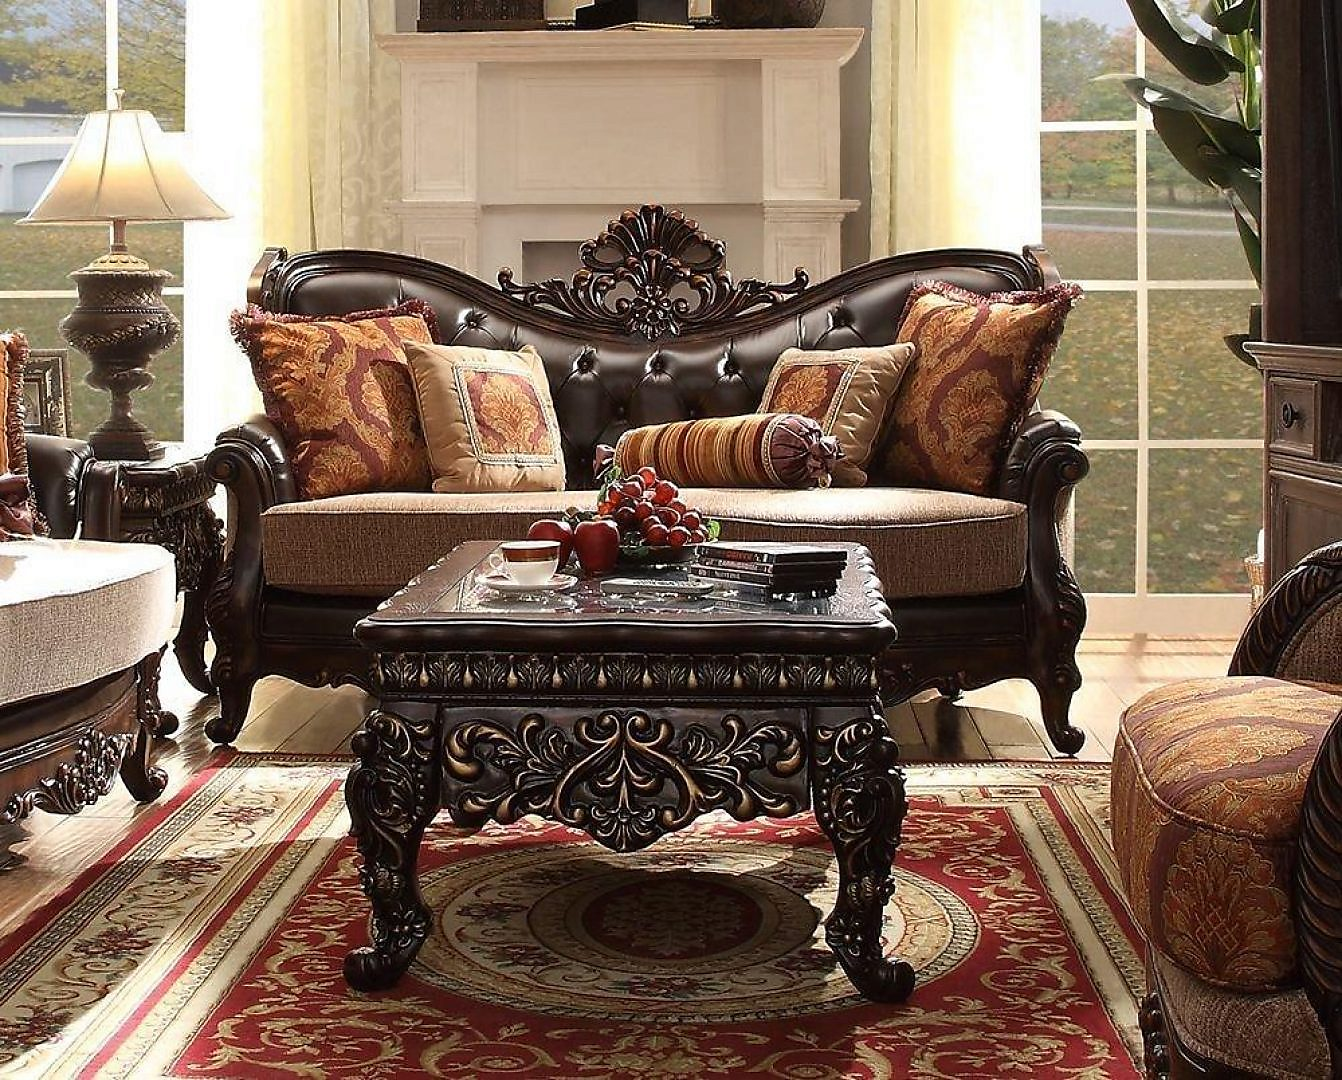 Traditional Carved HD-3630-S Sofa in Espresso by Homey Design